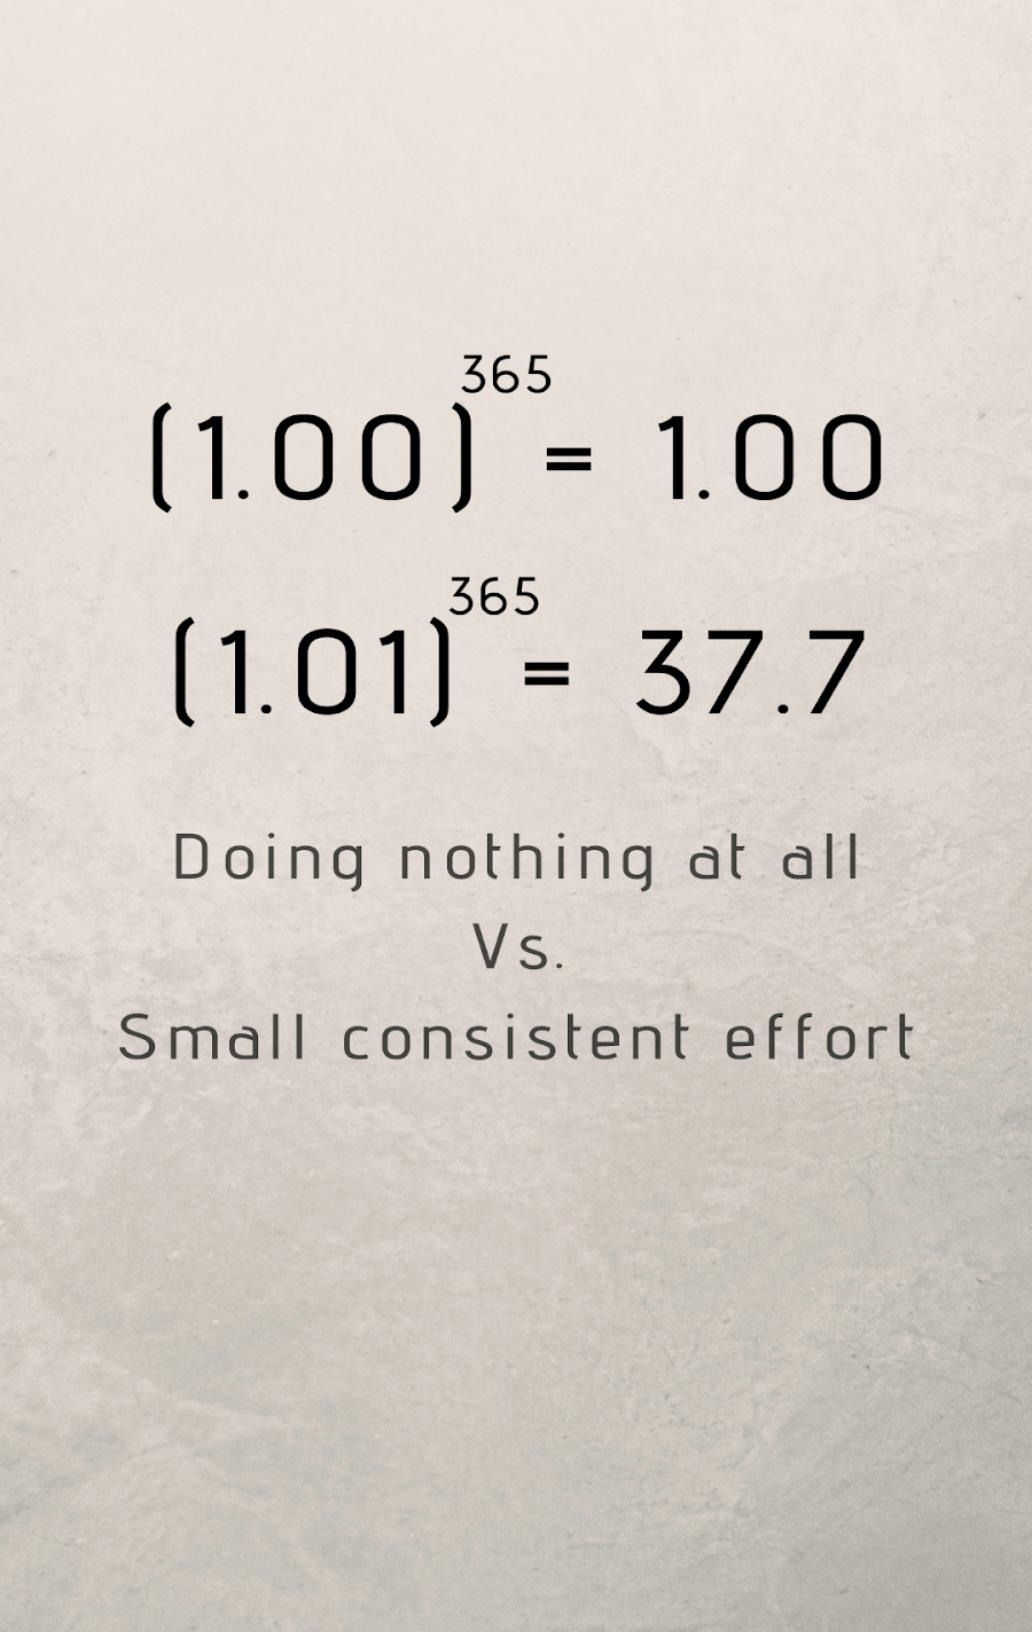 [Image] It's better to do something than to do nothing at all